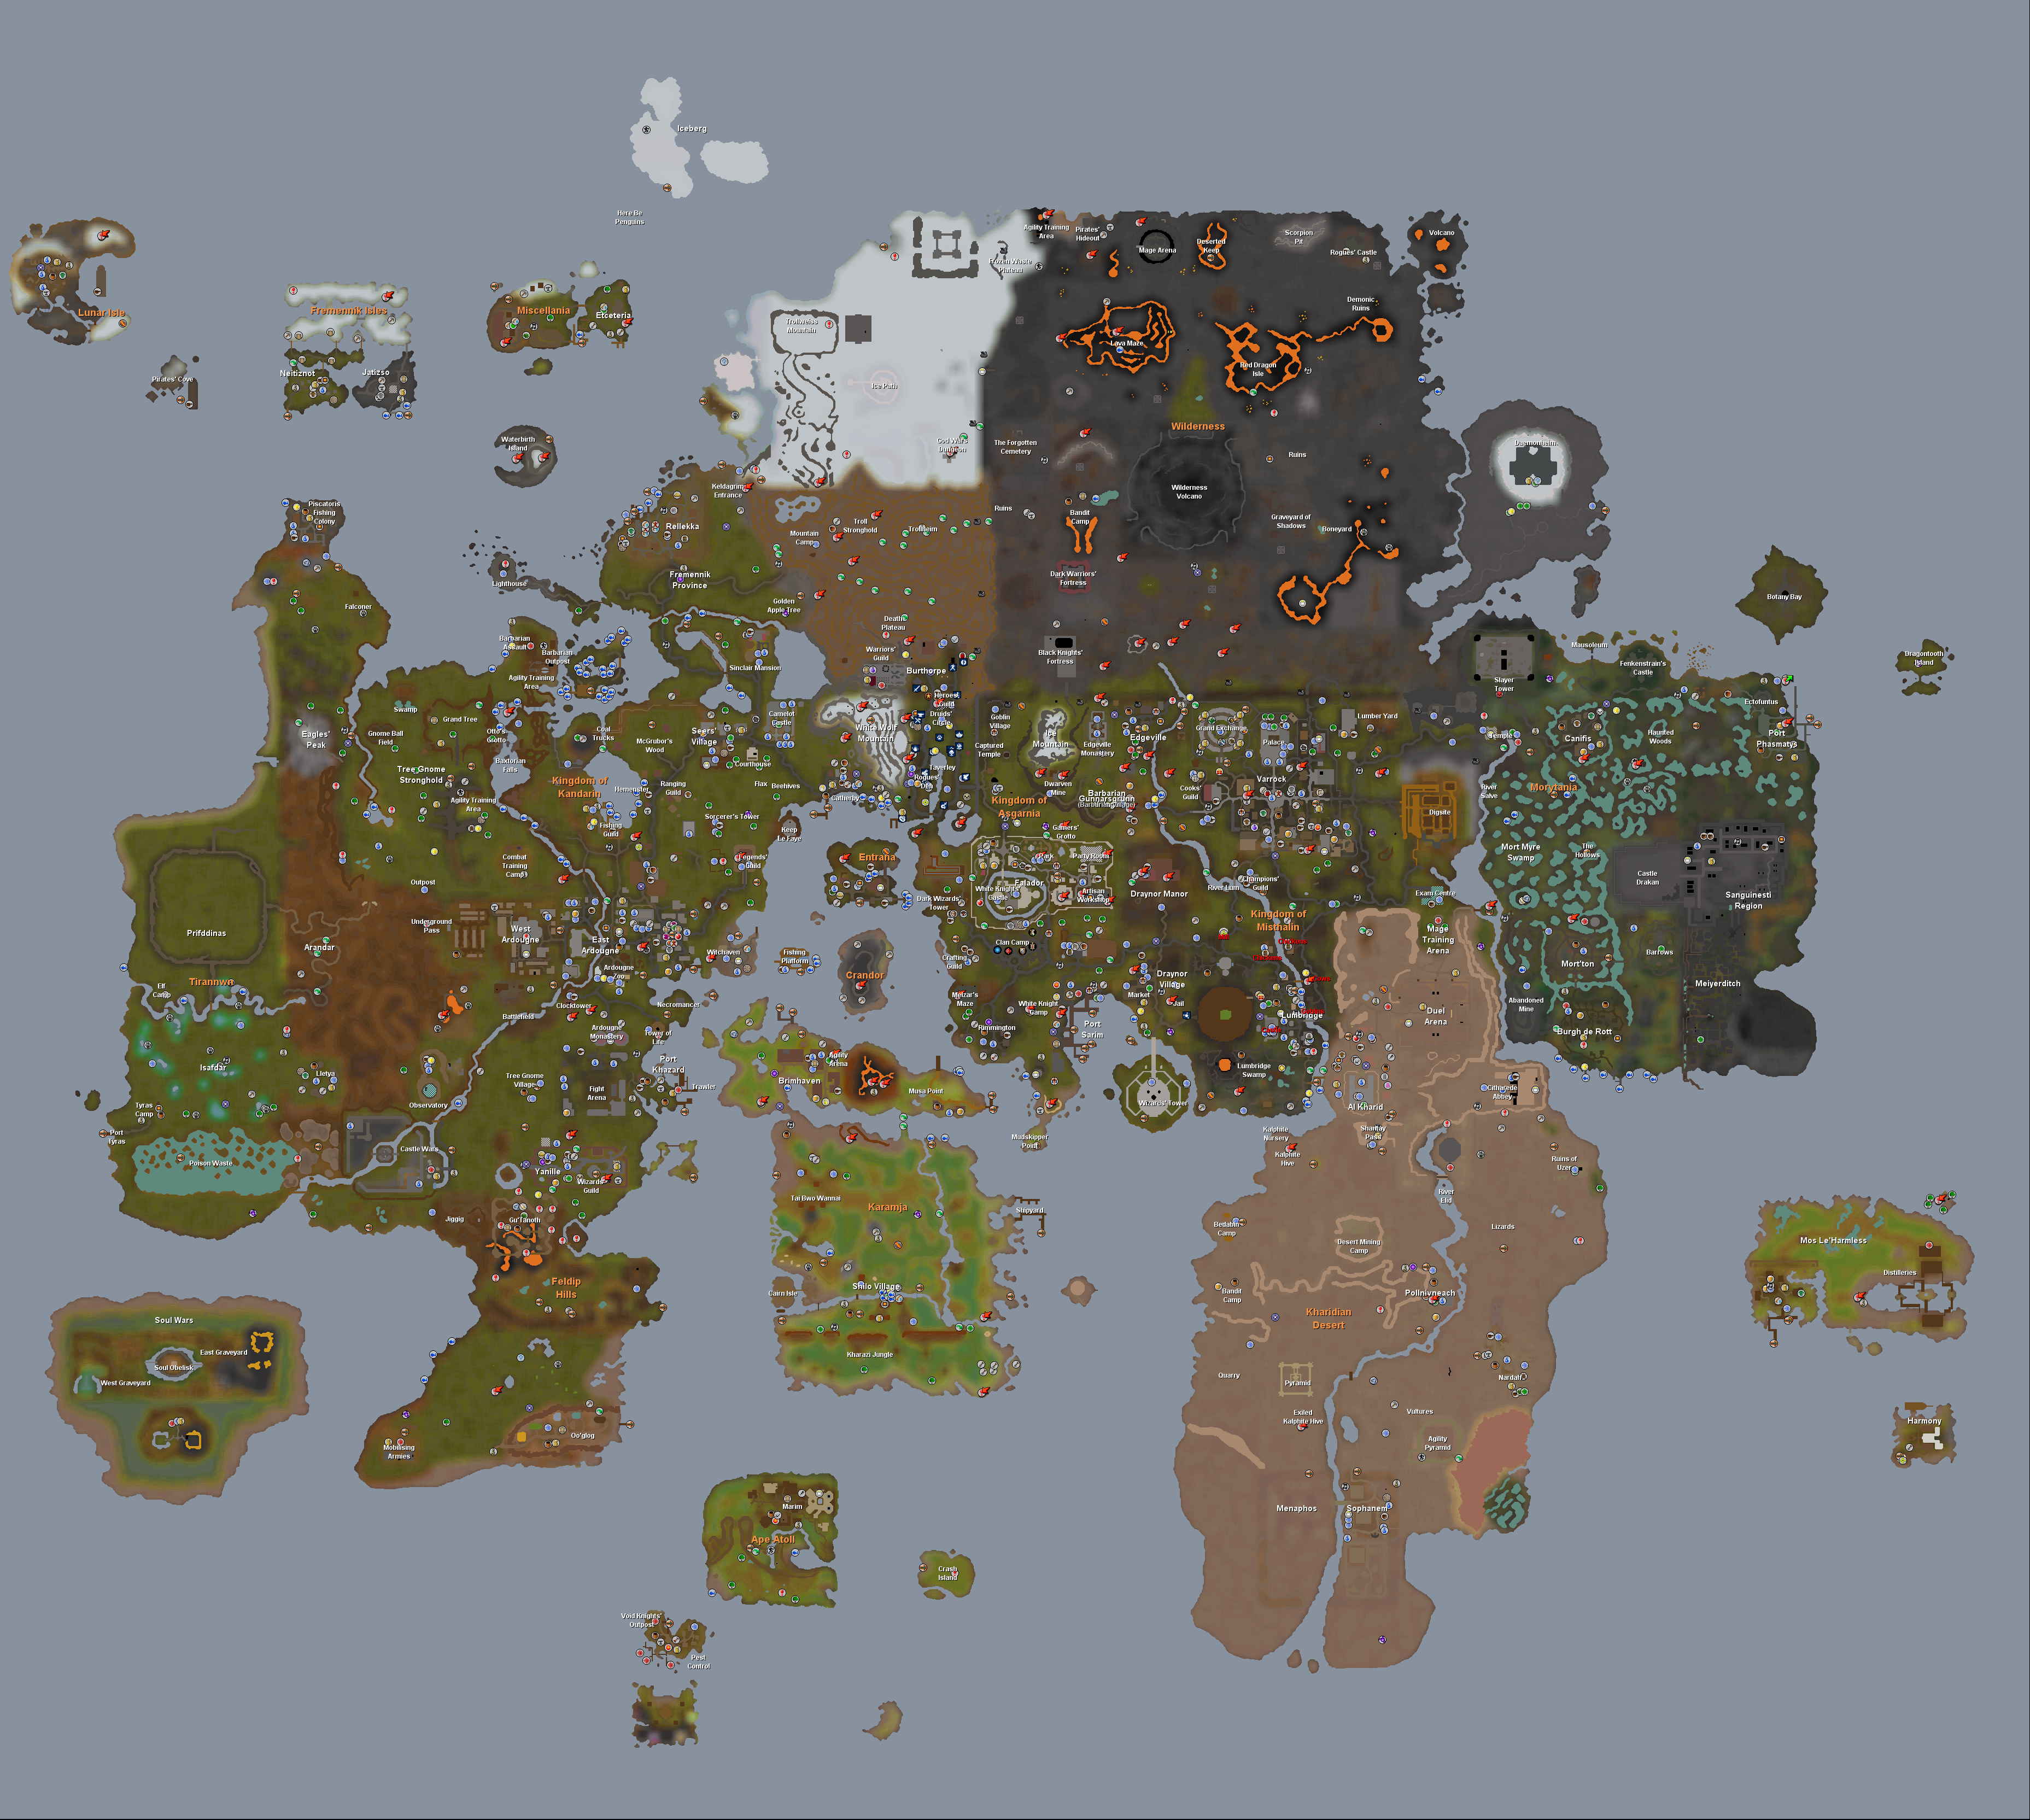 World maphistory runescape wiki fandom powered by wikia gumiabroncs Gallery